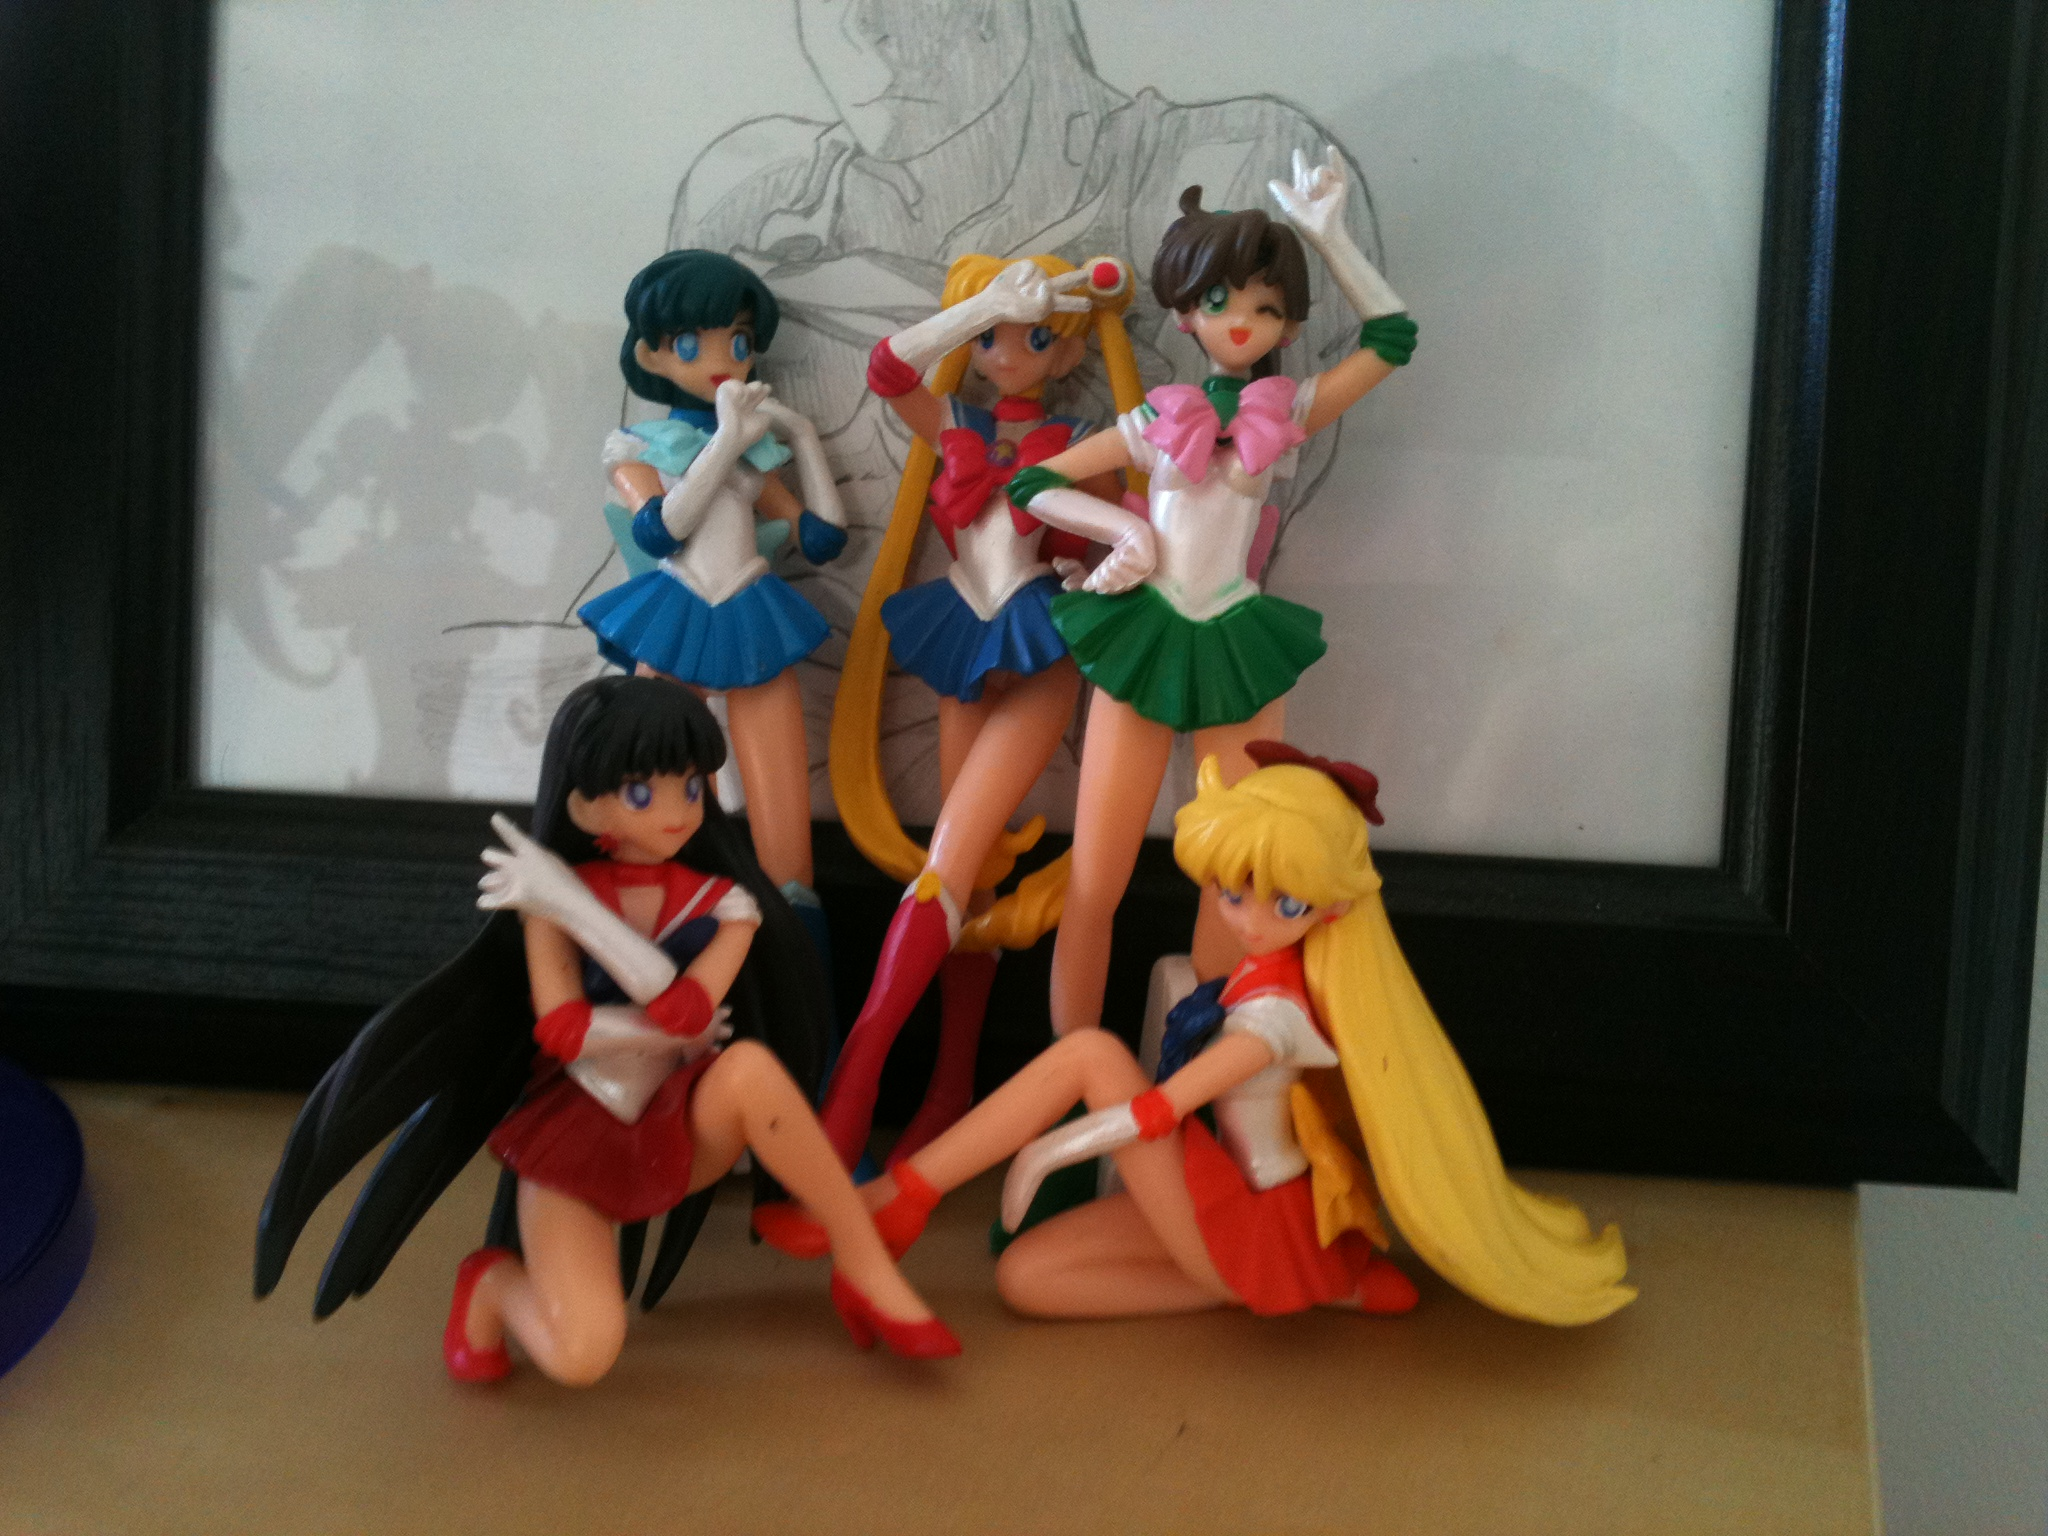 sailor_moon sailor_mars hgif bandai sailor_venus sailor_mercury sailor_jupiter bishoujo_senshi_sailor_moon sailor_moon_world hgif_series_bishoujo_senshi_sailor_moon_world